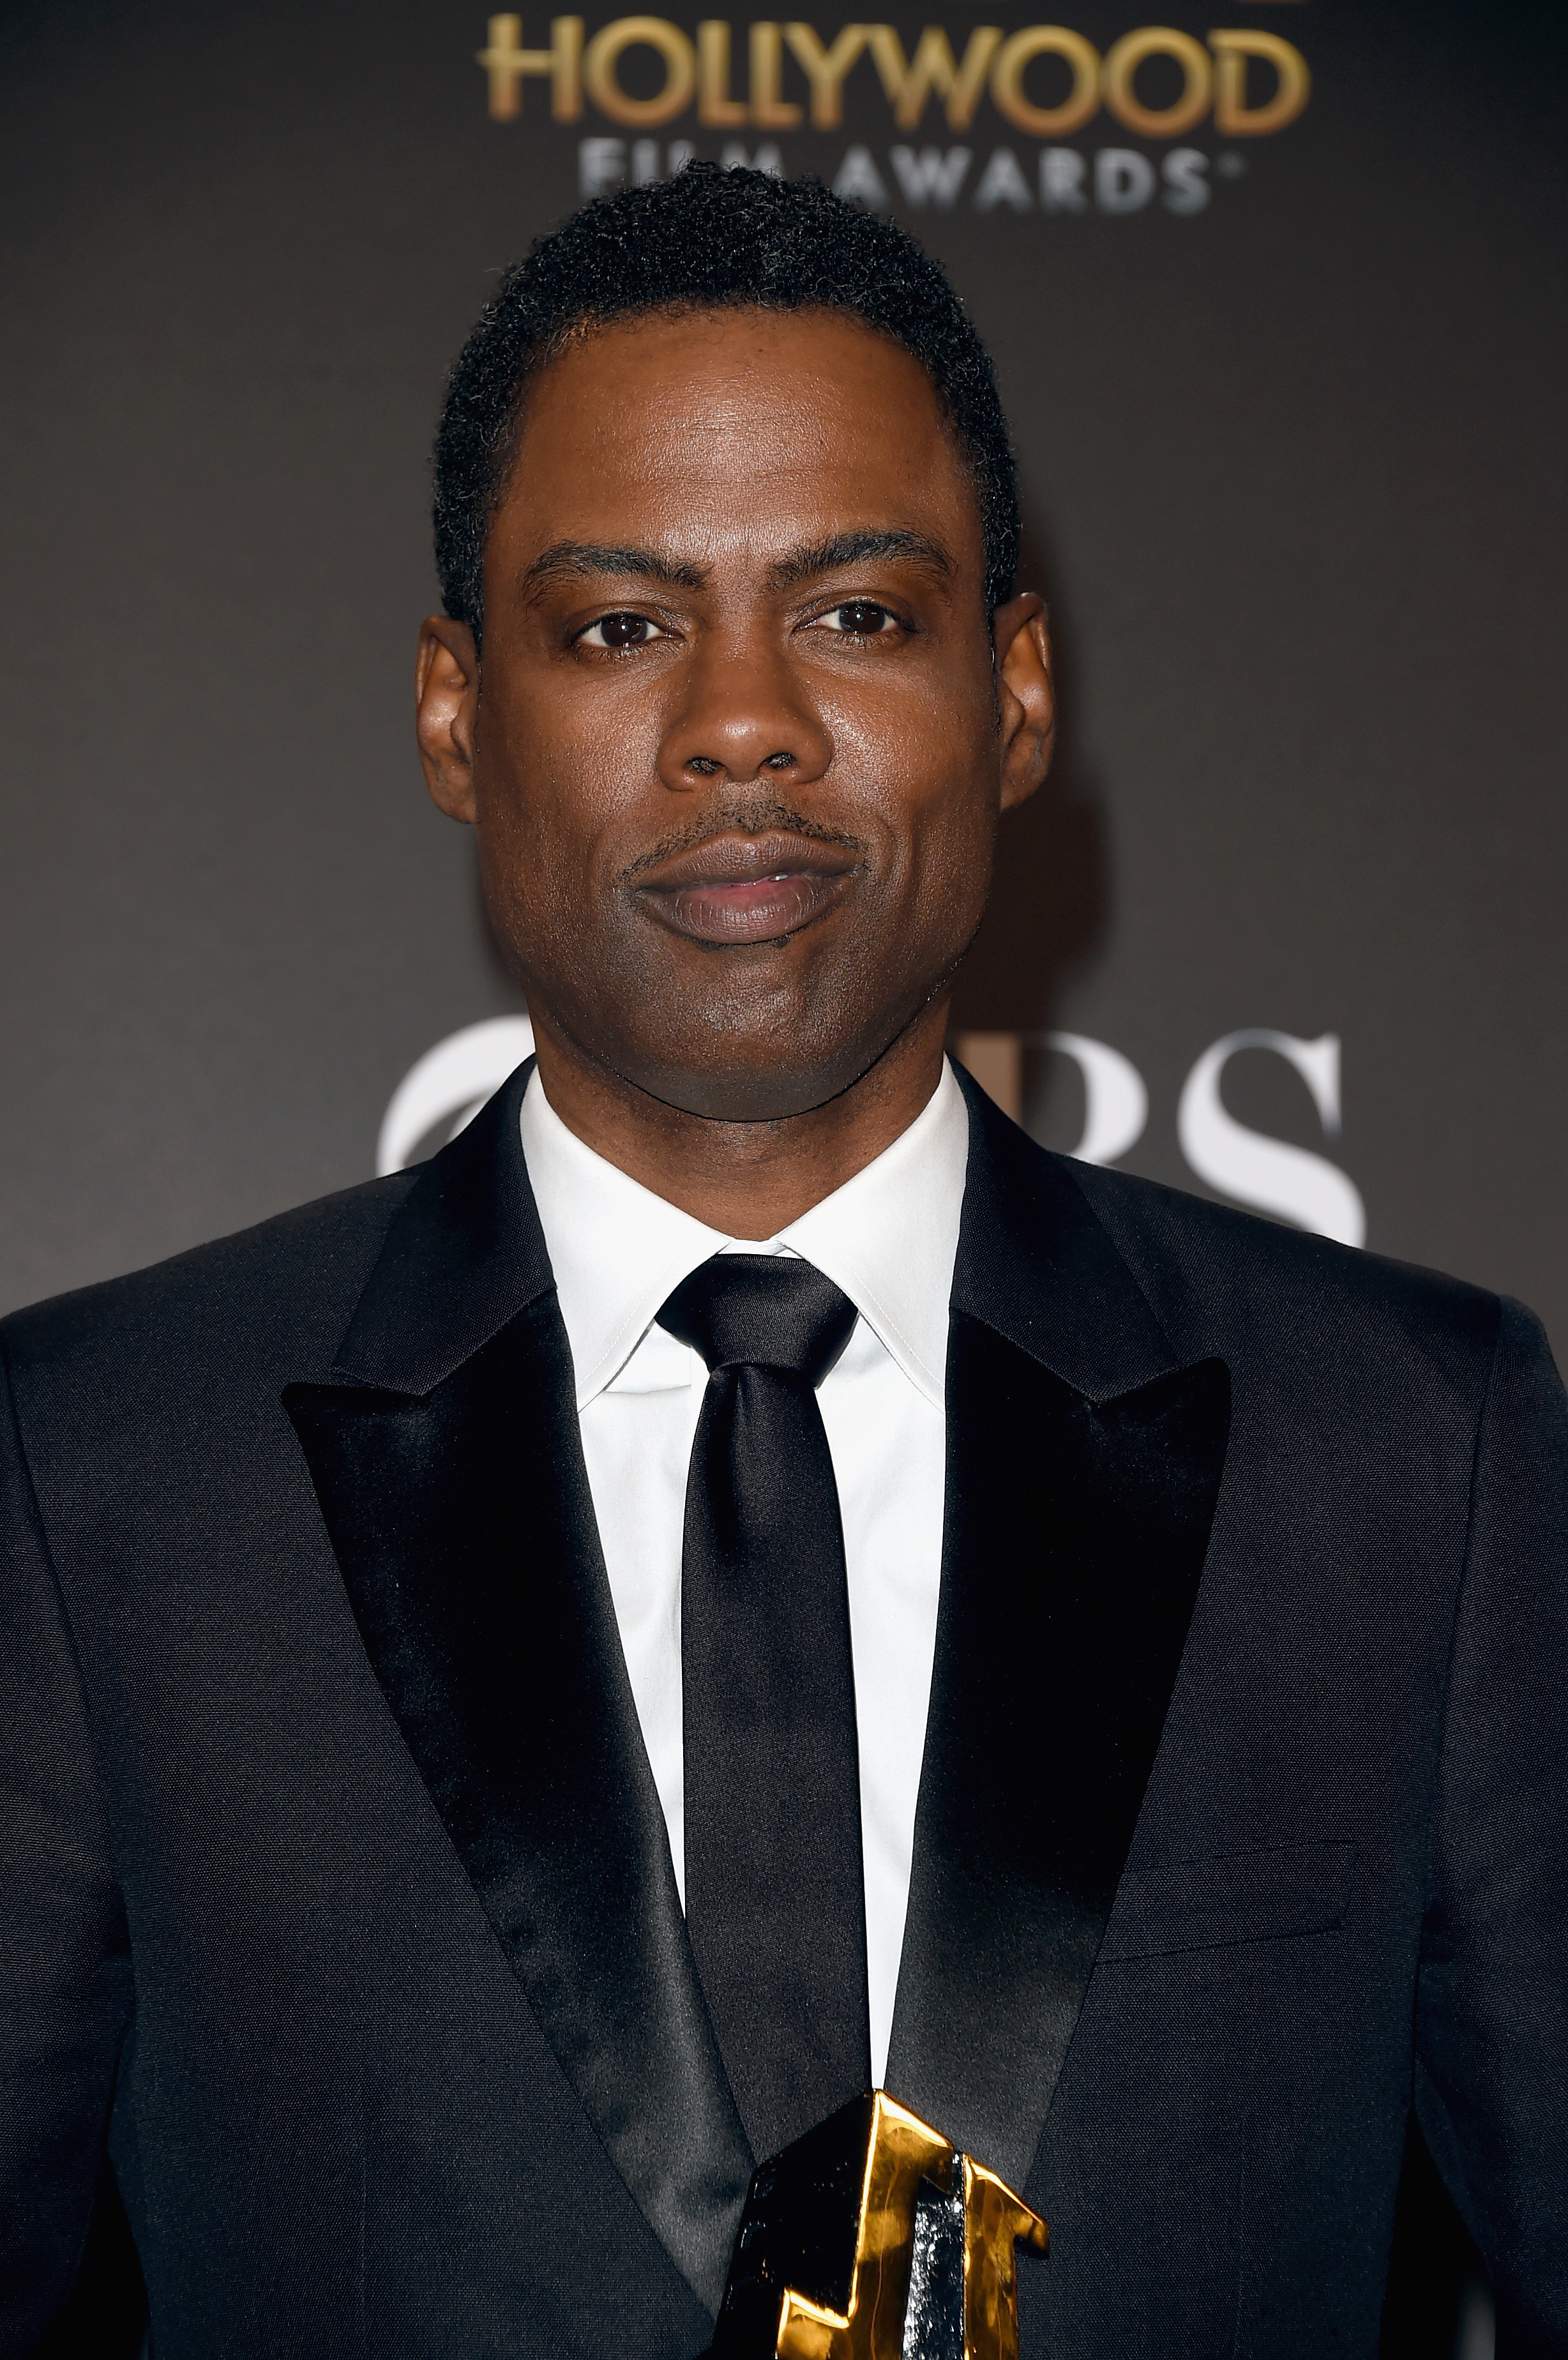 Chris rock its not black people who have progressed its white people